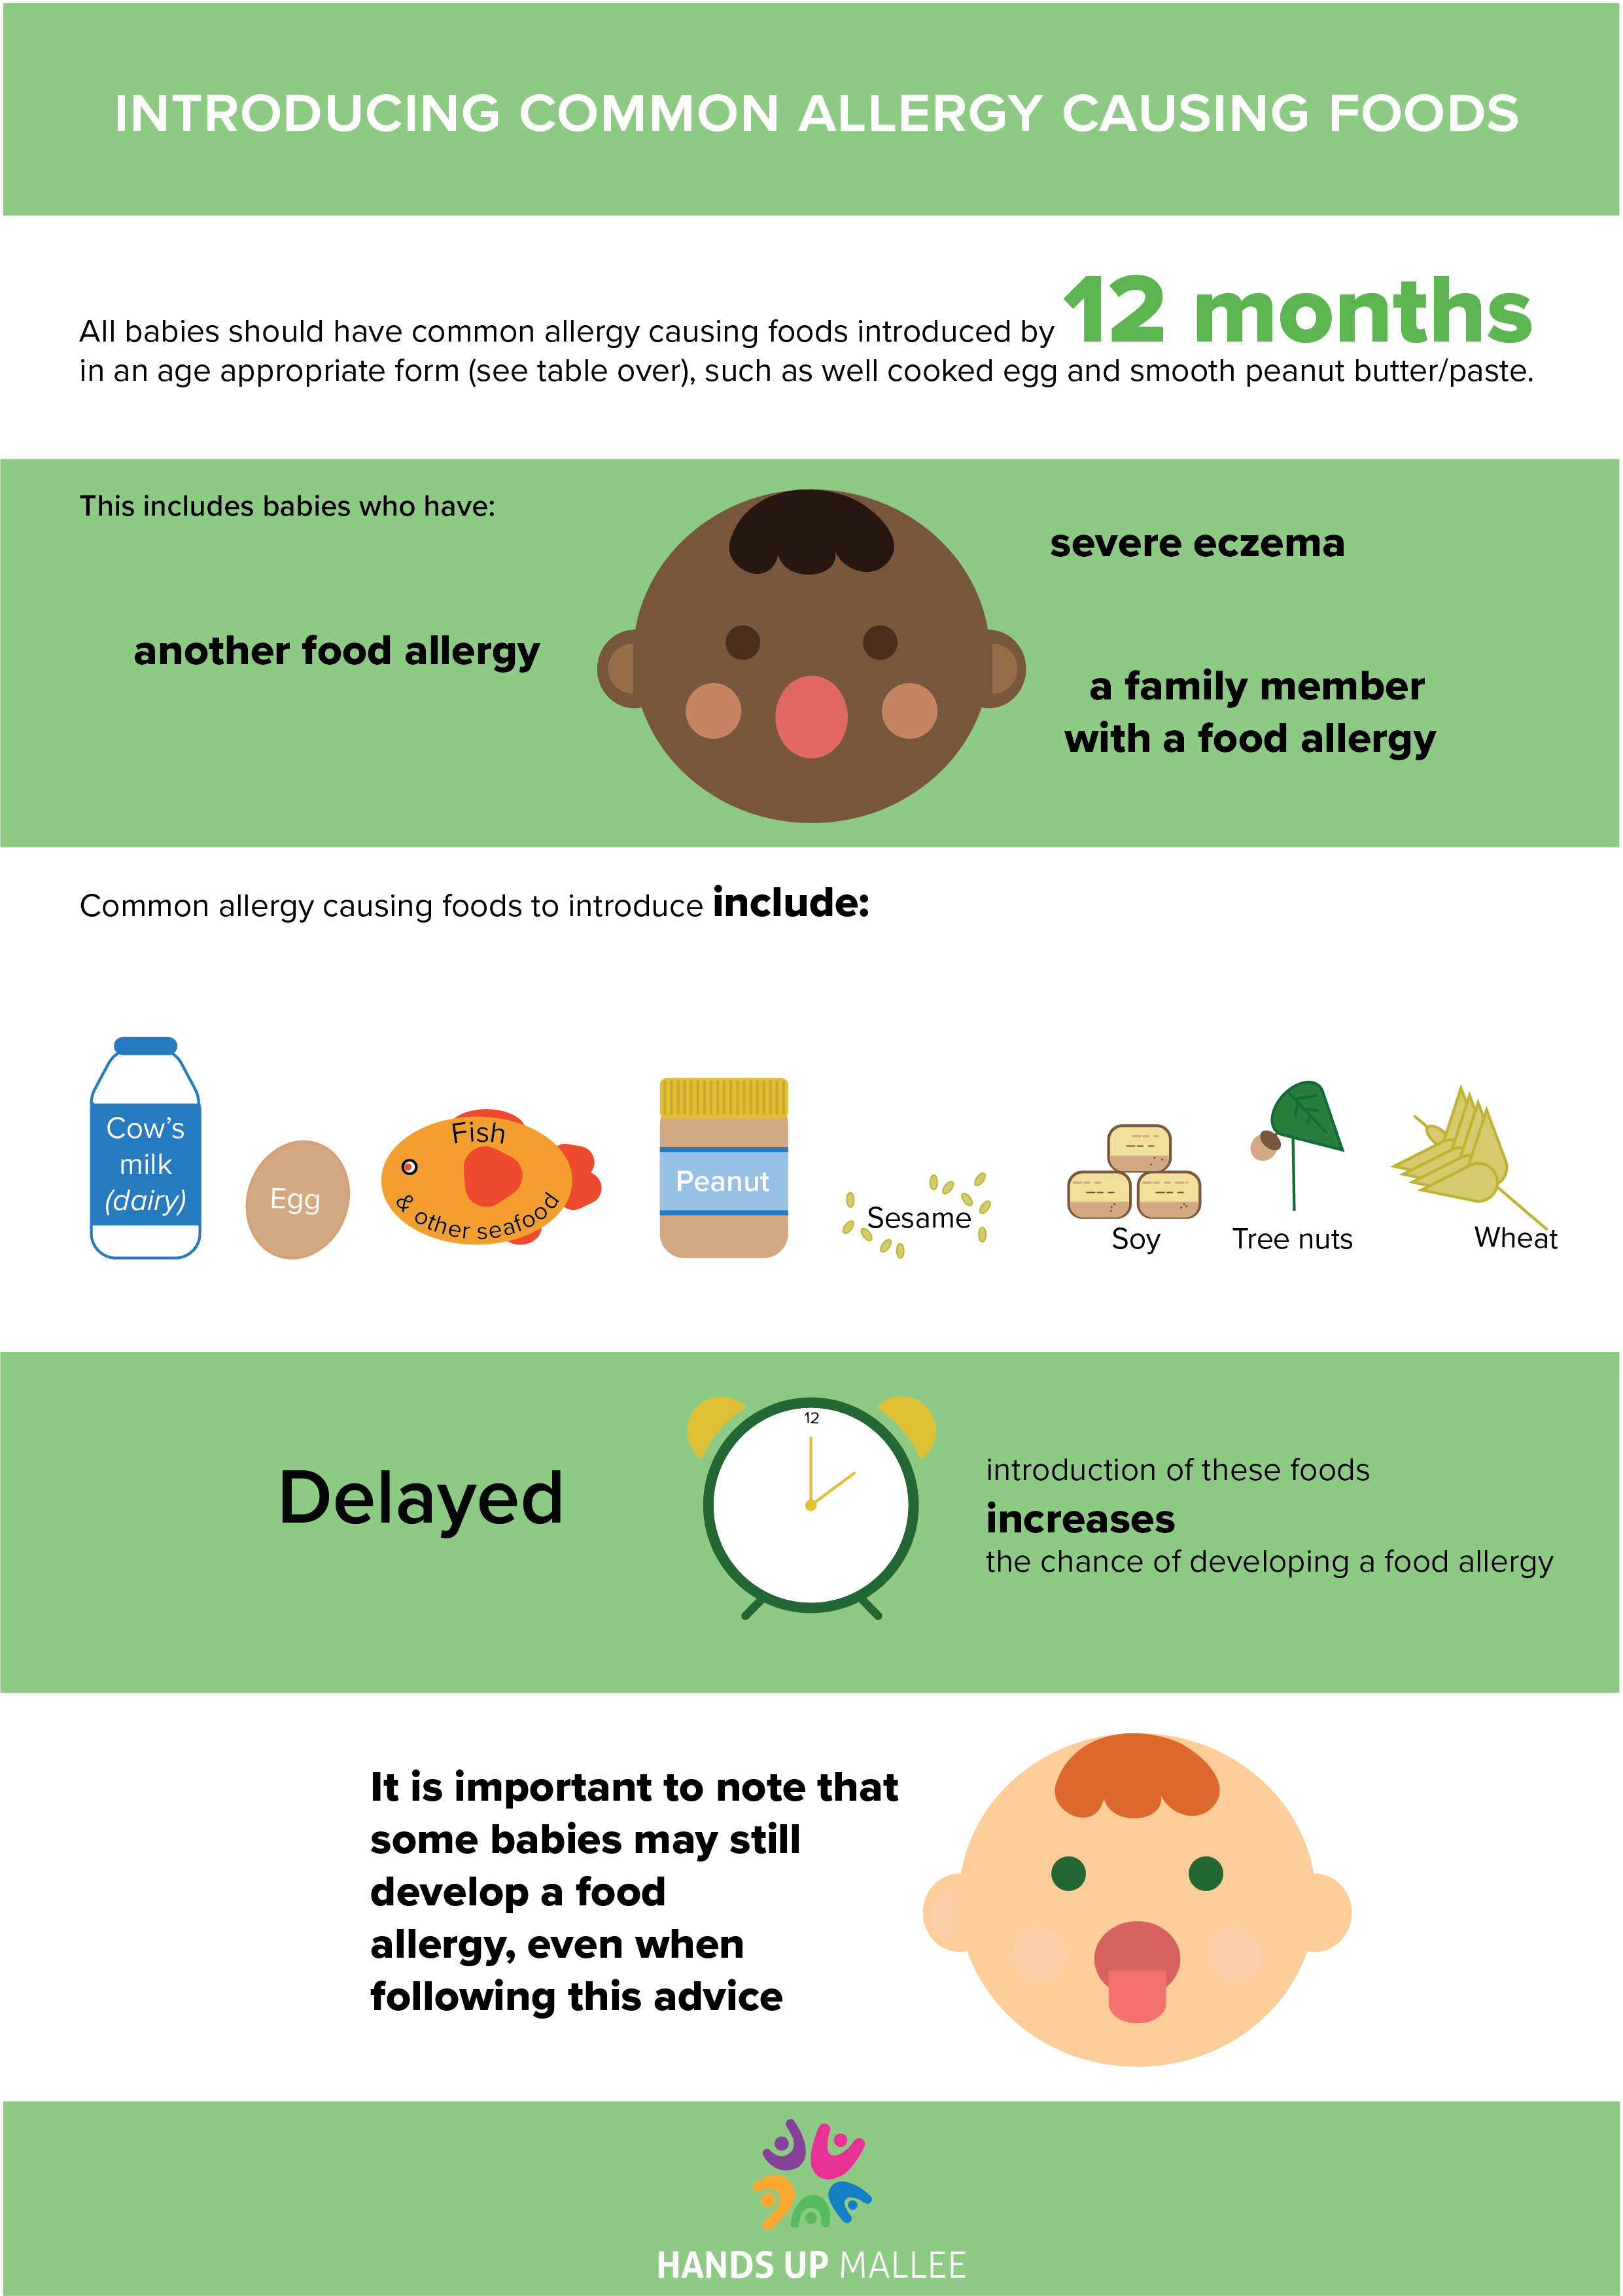 Introducing Common allergy causing foods - Download our 2 page guide to introducing allergy causing foods